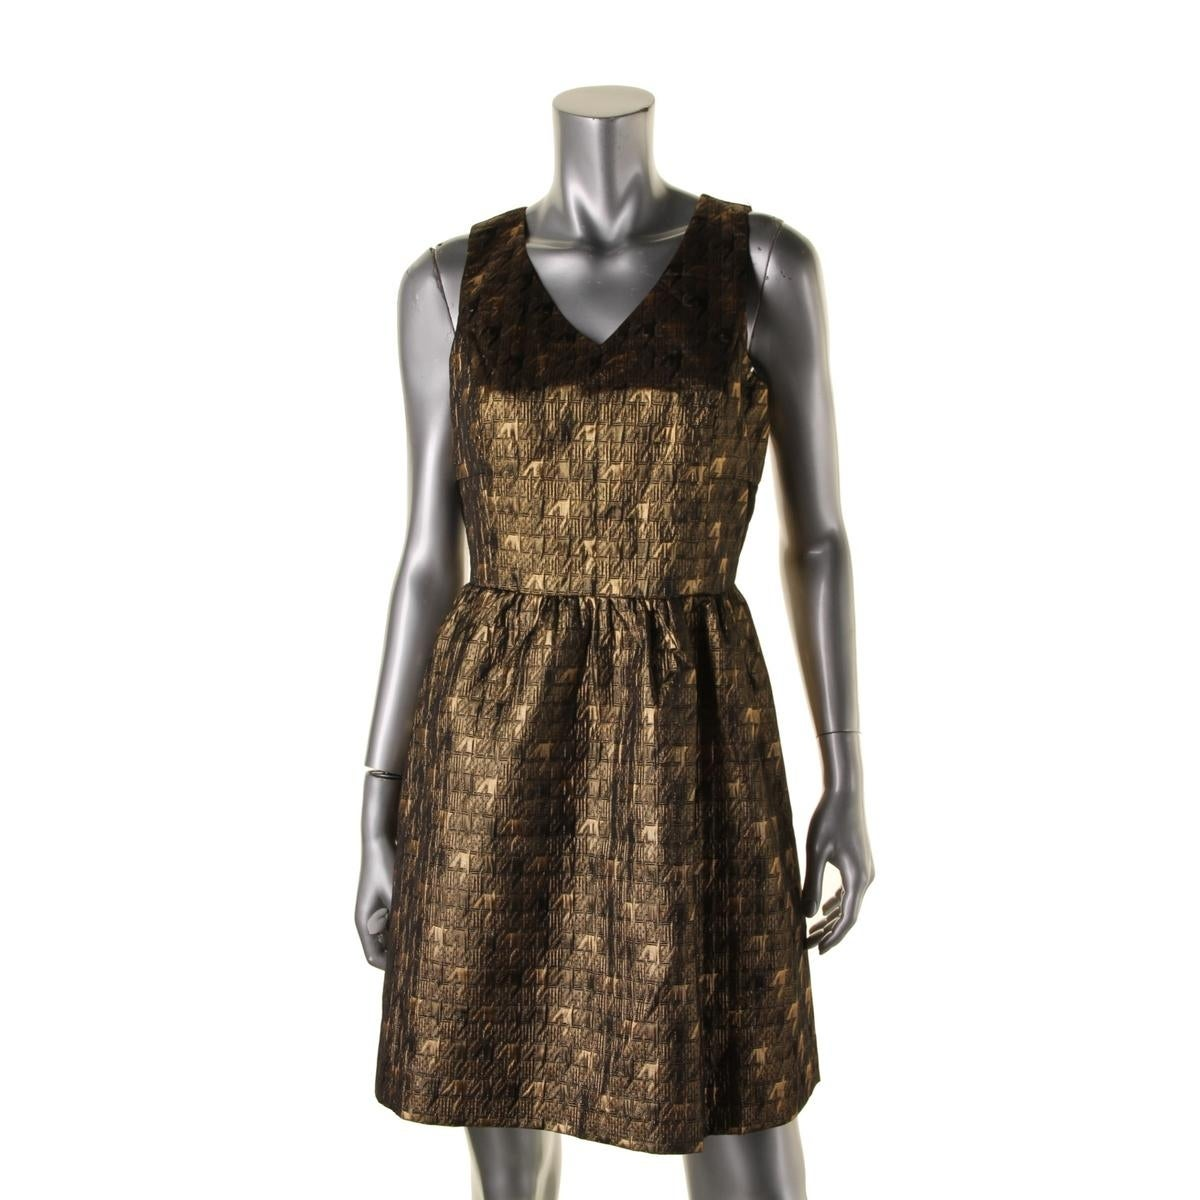 Kensie Womens Cocktail Dress Metallic Houndstooth - Free Shipping On ...